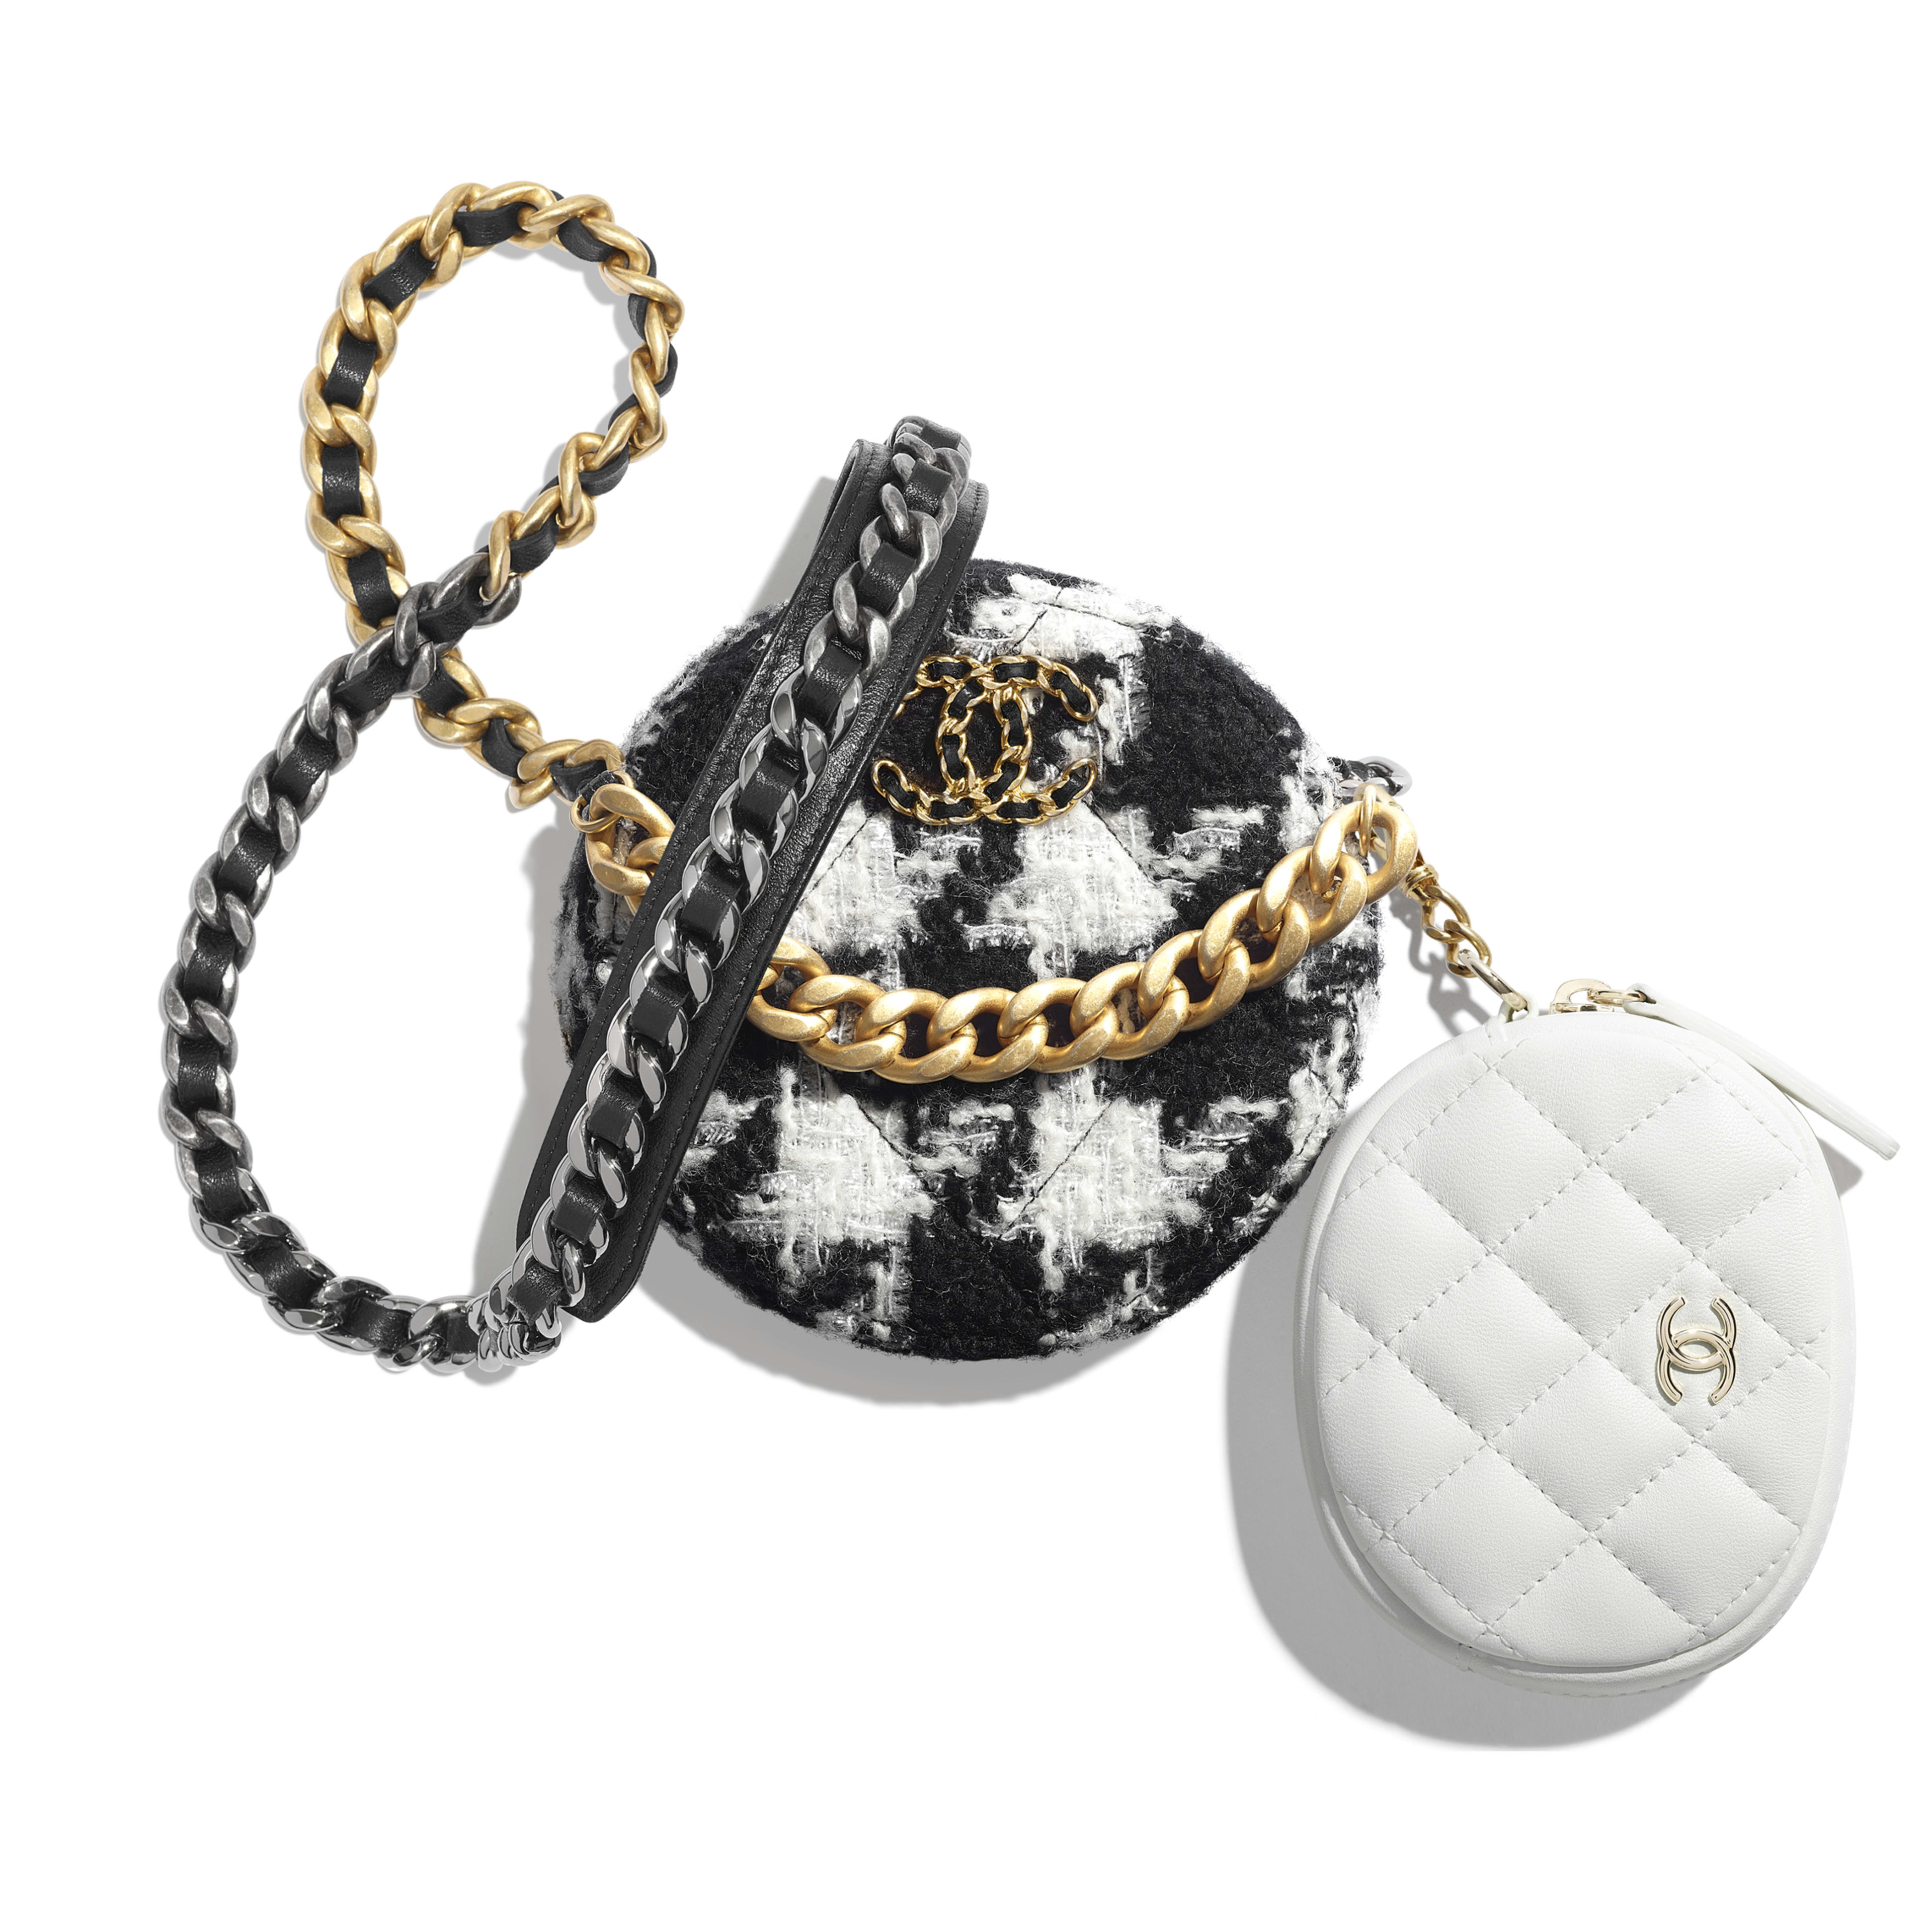 CHANEL 19 Clutch with Chain & Coin Purse - Black & White - Wool Tweed, Lambskin, Gold-Tone, Silver-Tone & Ruthenium-Finish Metal - Default view - see full sized version